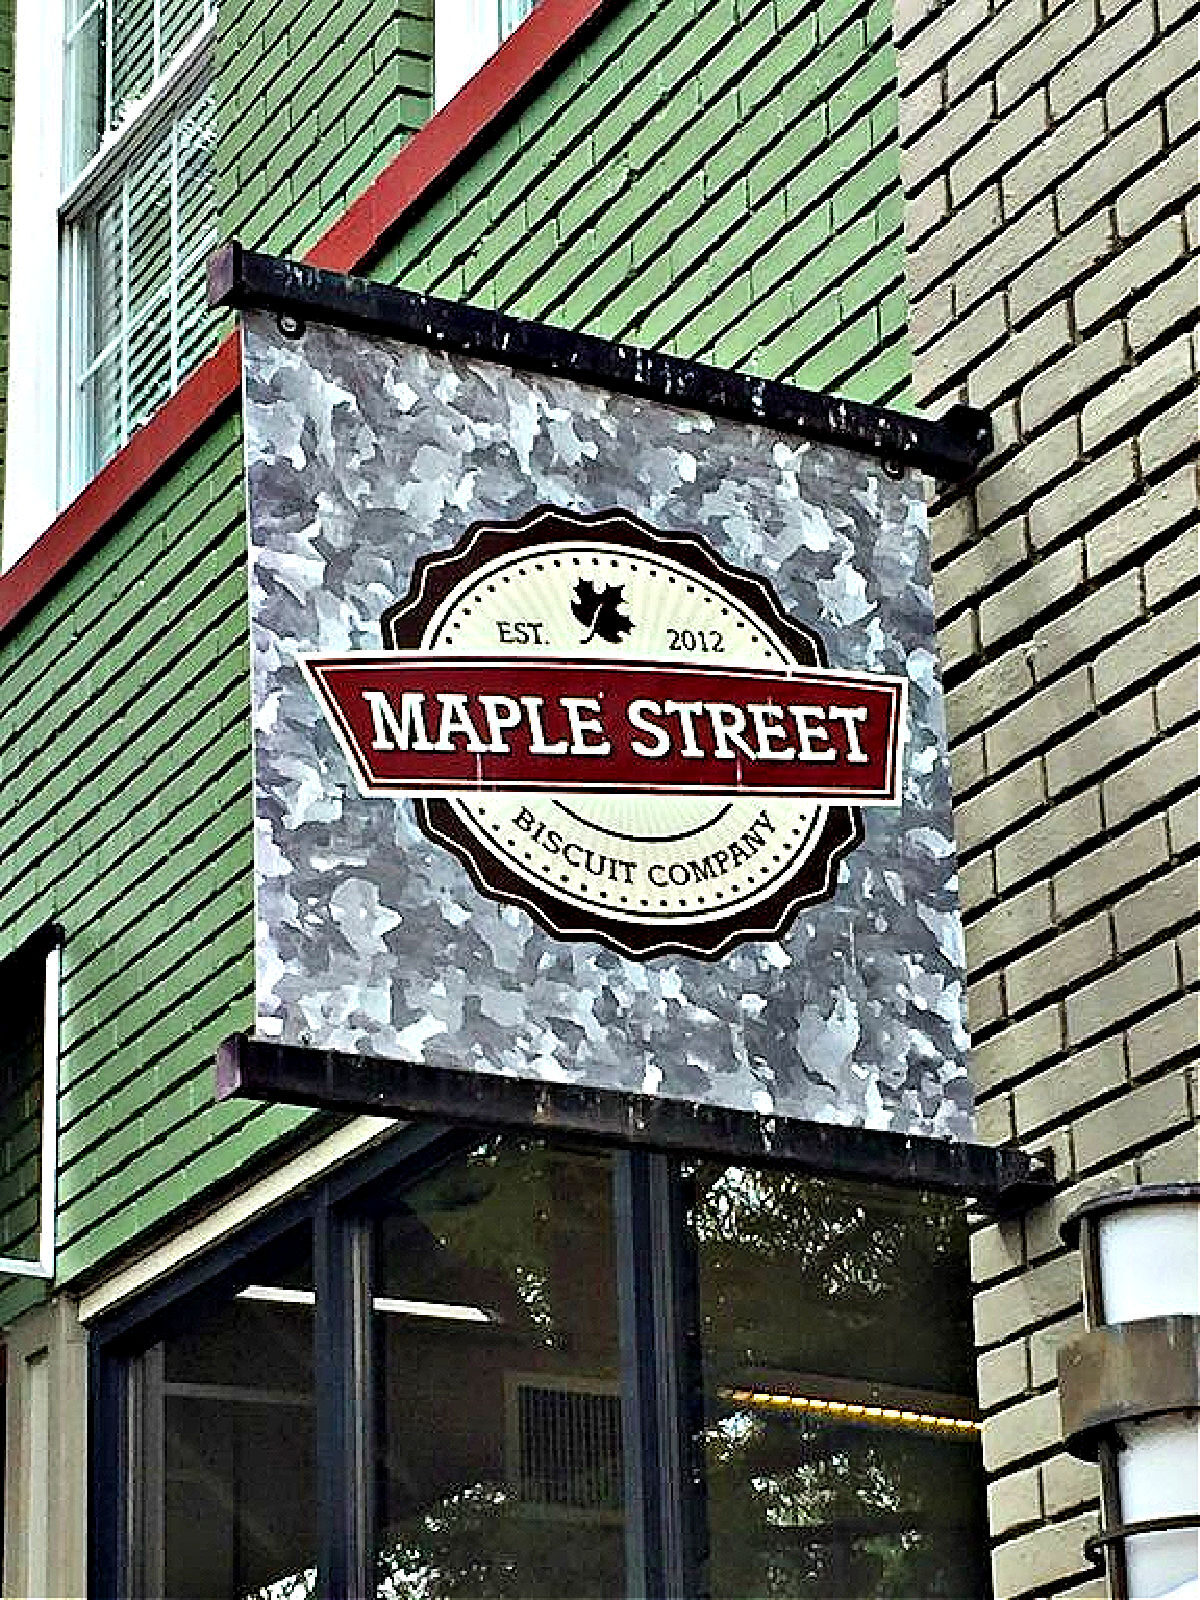 Maple Street Biscuit Company sign on building.